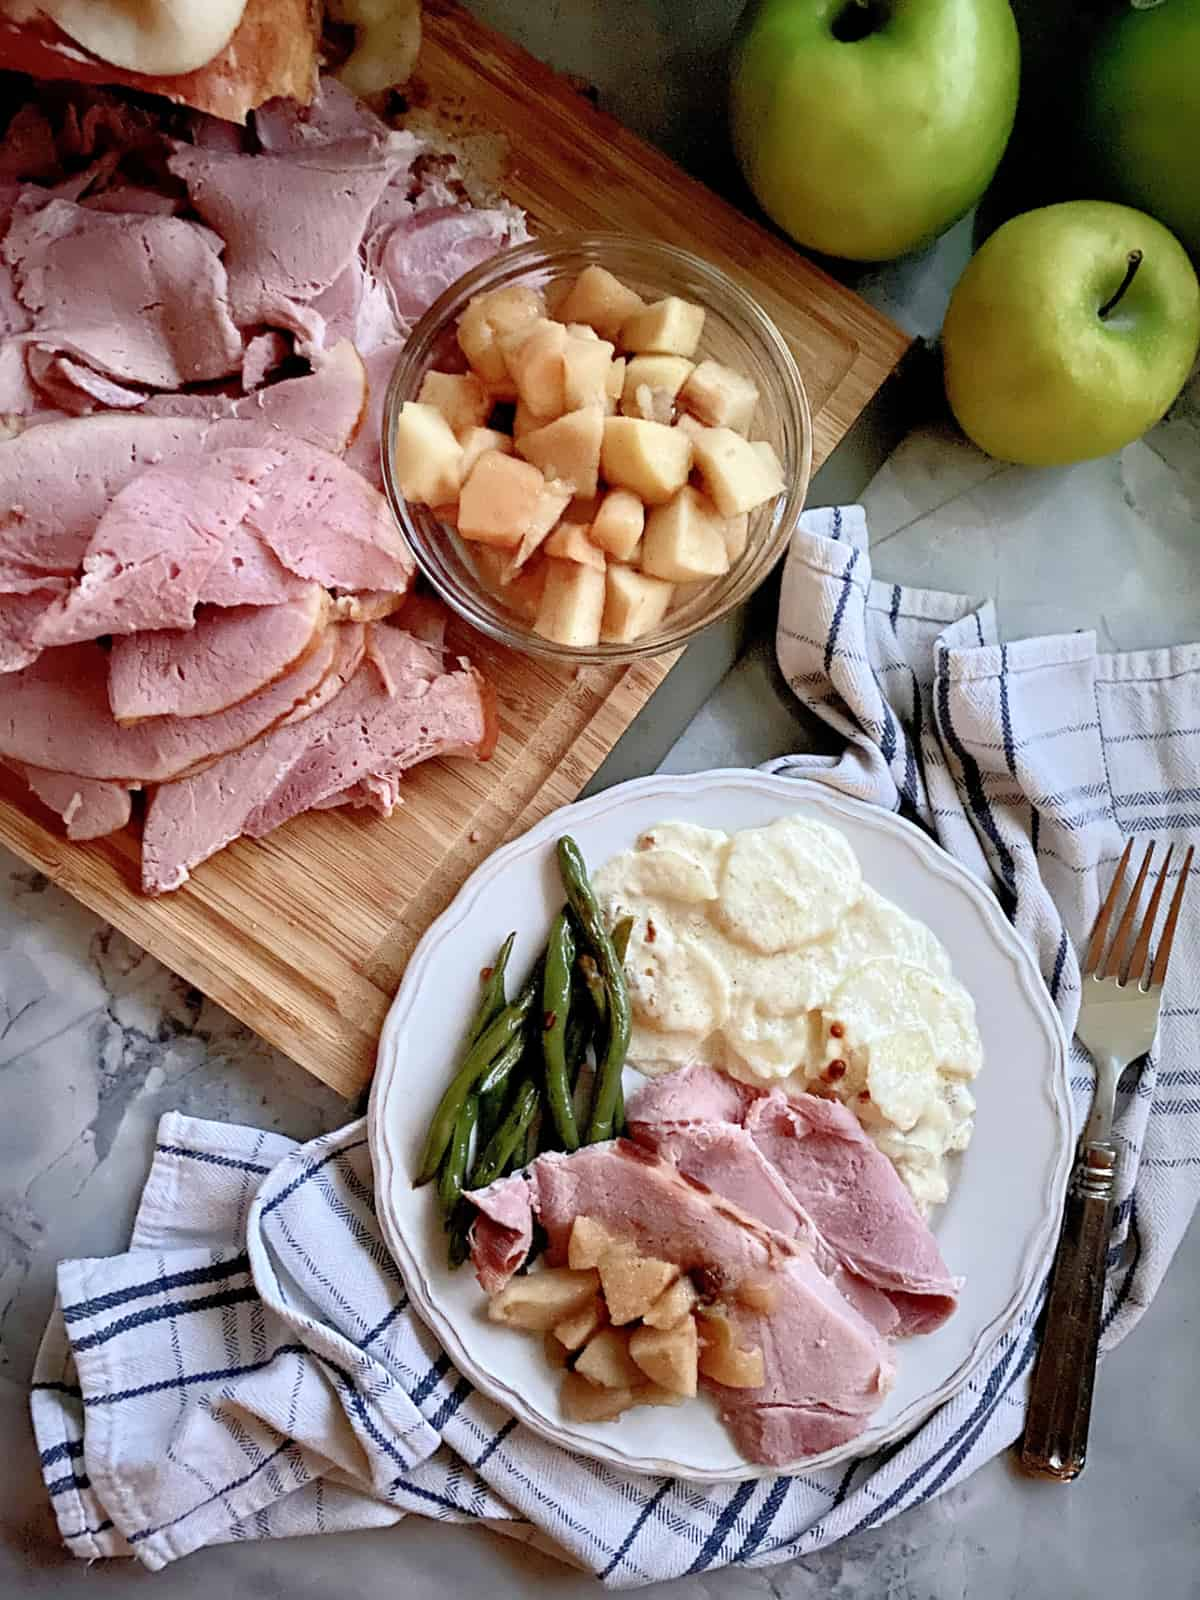 Top view of sliced ham and apple sauce on a cutting board with a dinner plate filled with ham, potatoes, apples, and green beans.